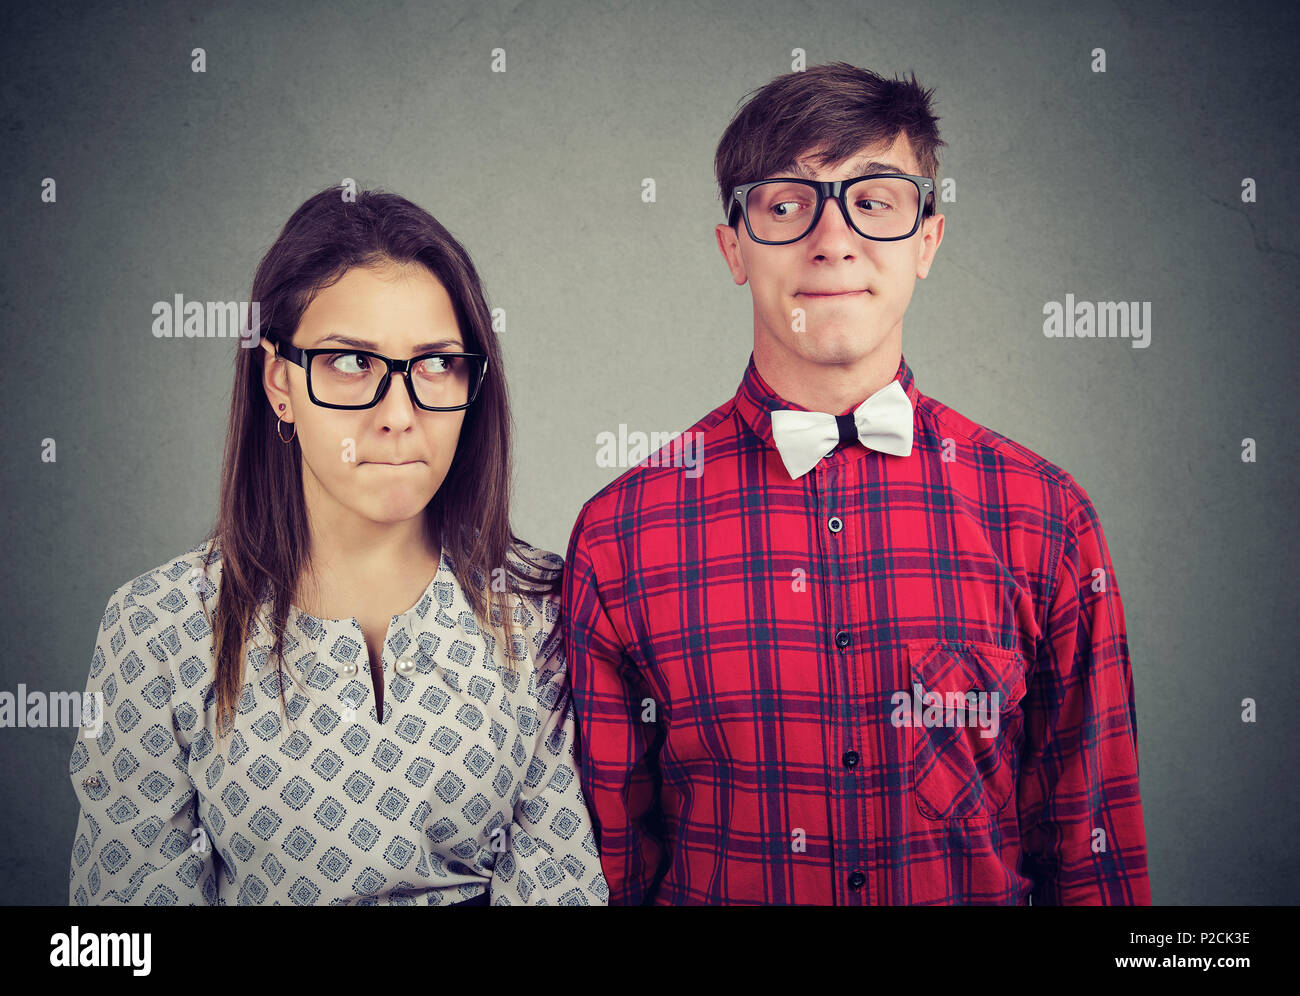 embarrassing dates and dating situations